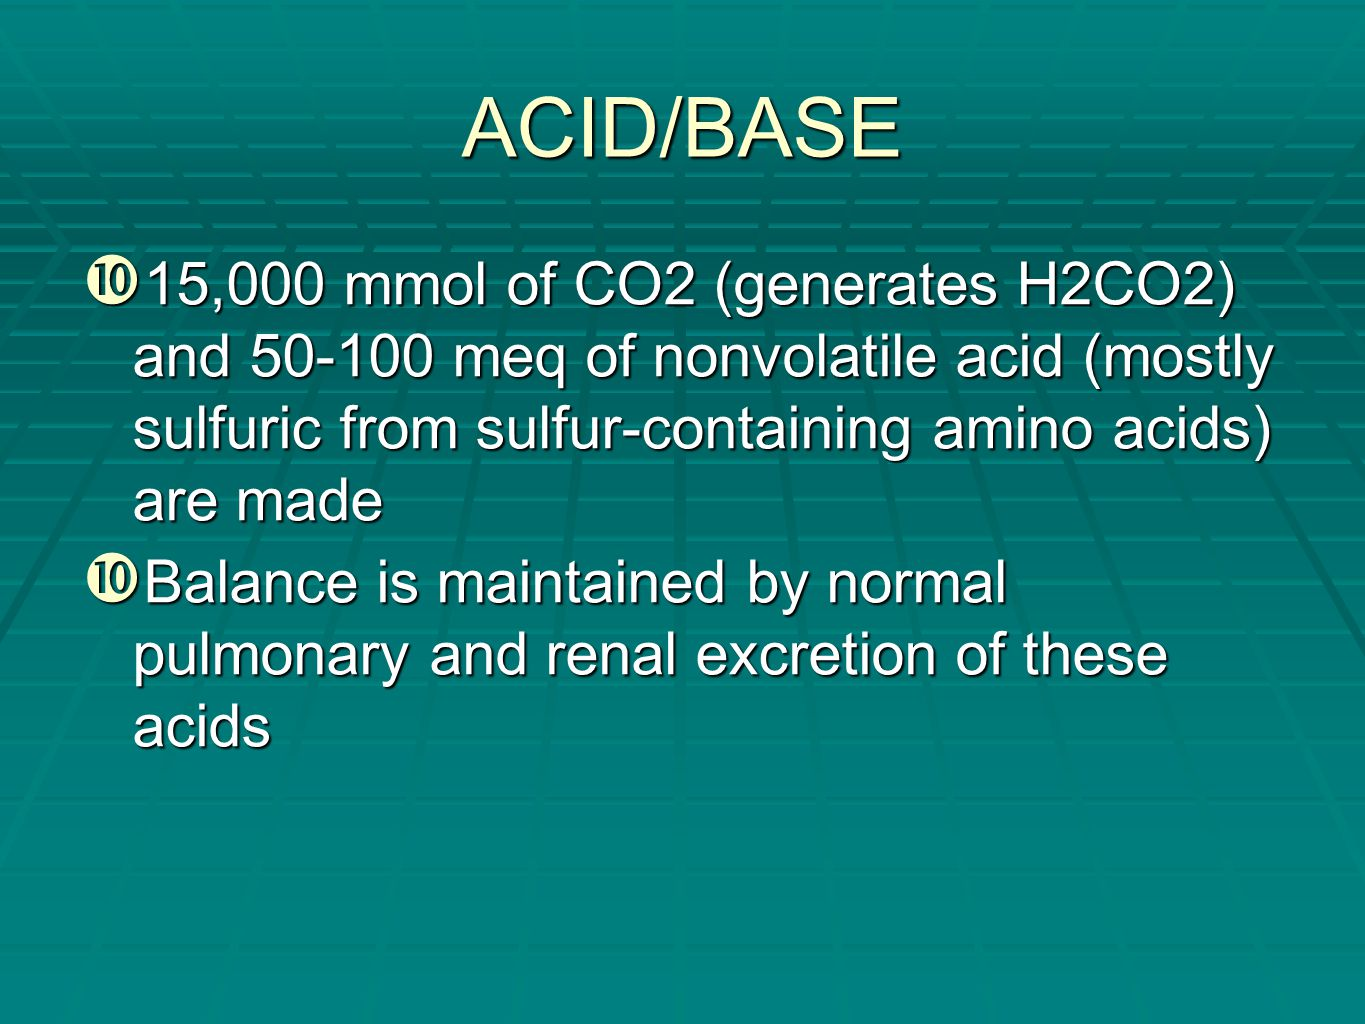 ACID/BASE 15,000 mmol of CO2 (generates H2CO2) and 50-100 meq of nonvolatile acid (mostly sulfuric from sulfur-containing amino acids) are made.